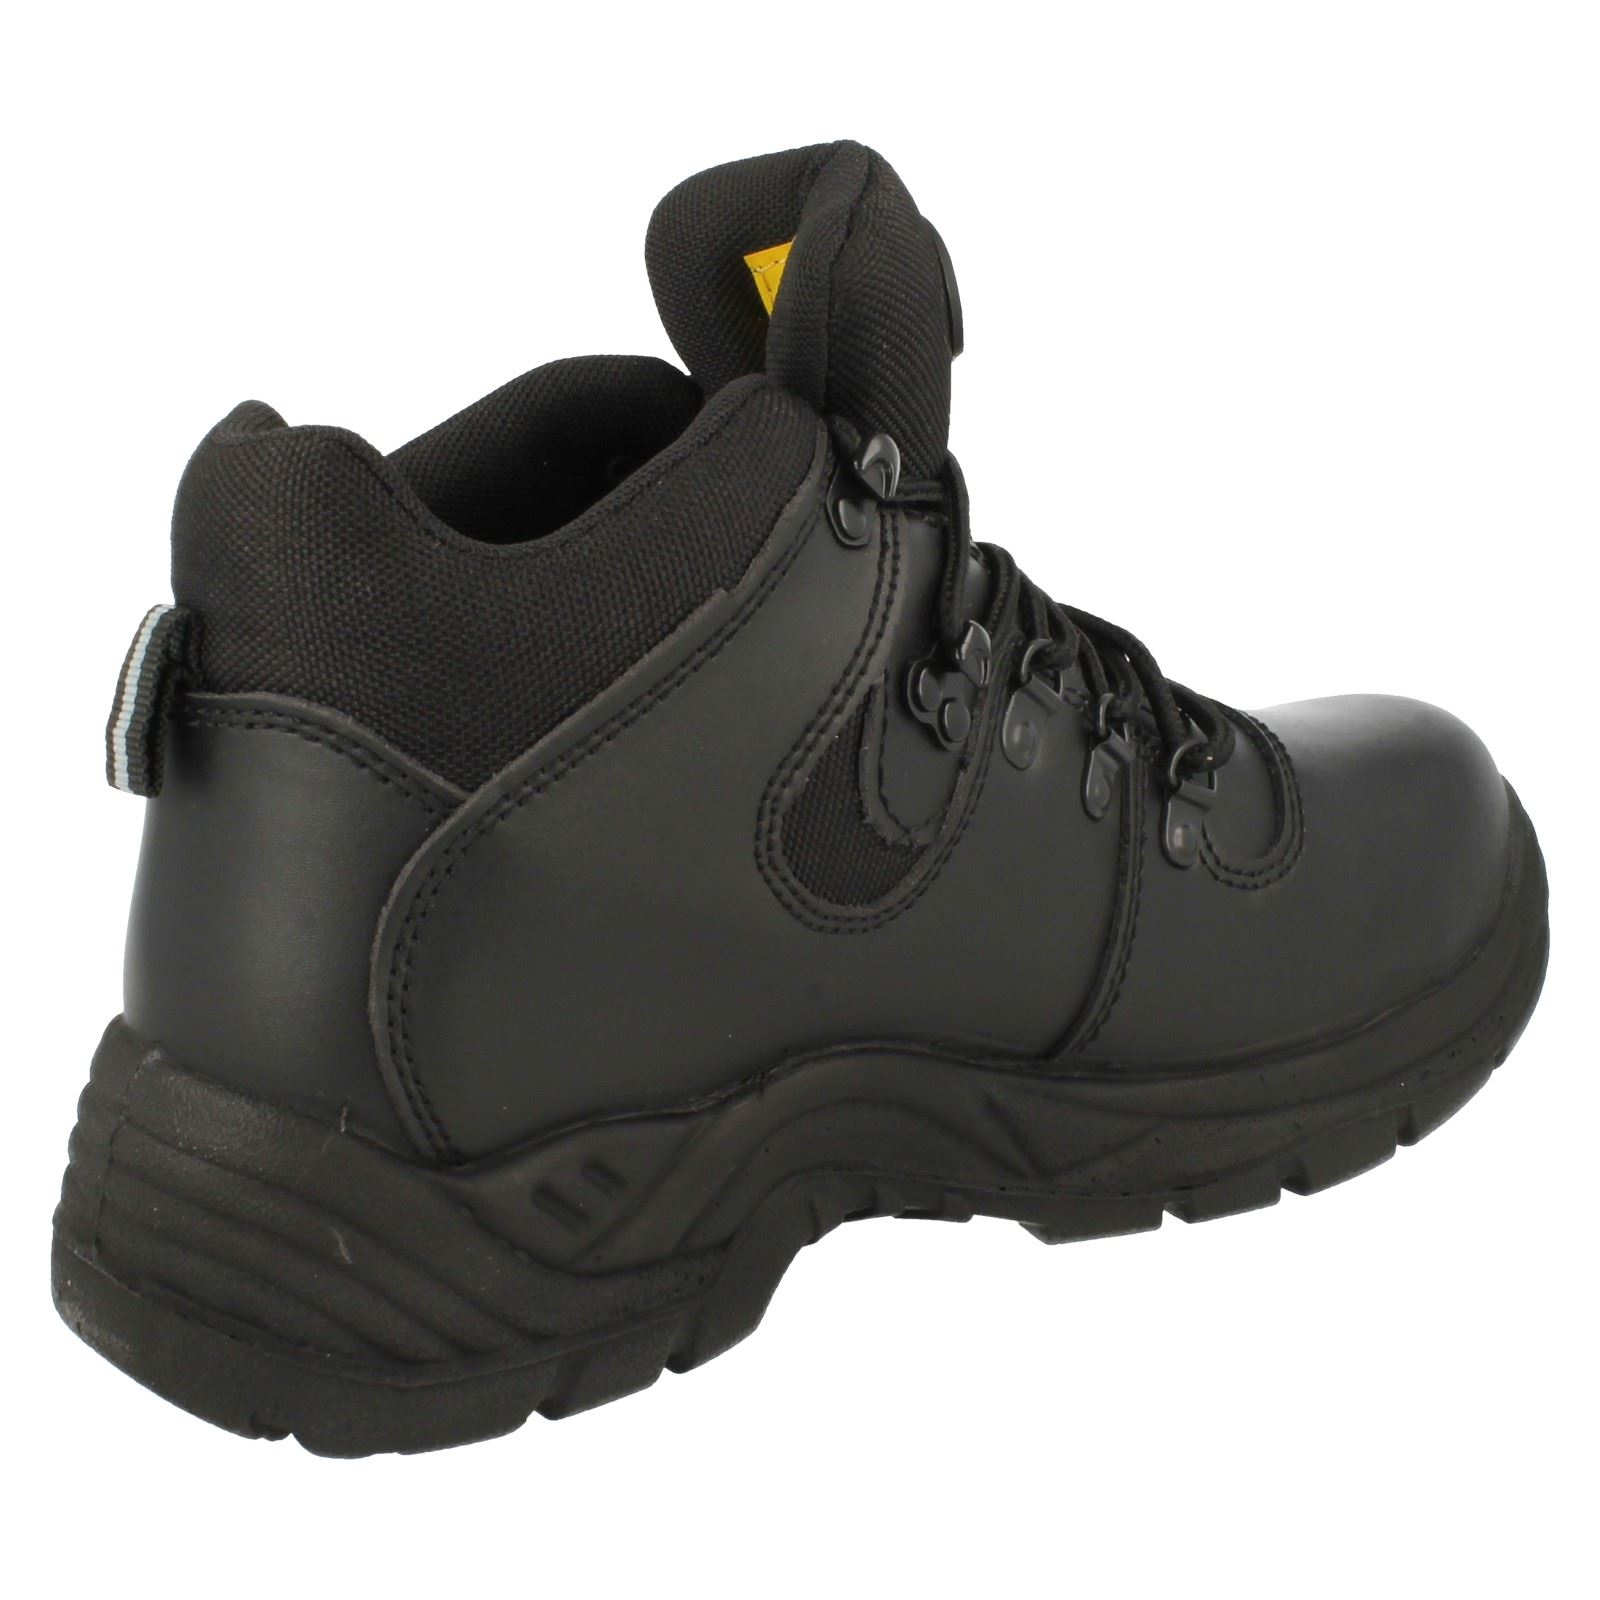 Dickies Safety Boots Fury S/S Hiker Bt